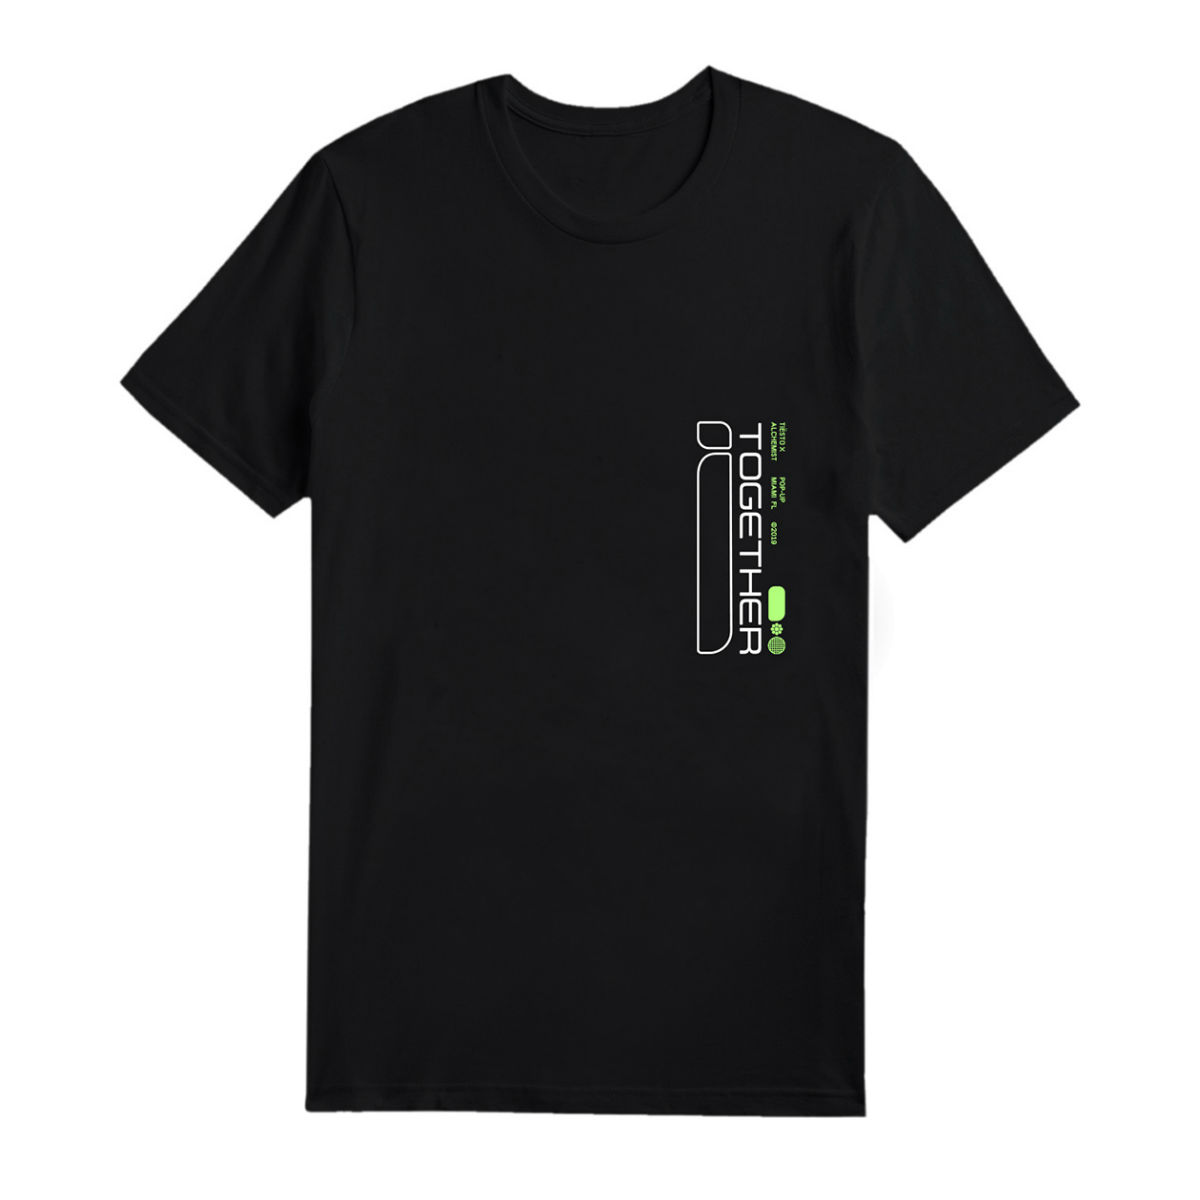 Secrets T-Shirt - Black